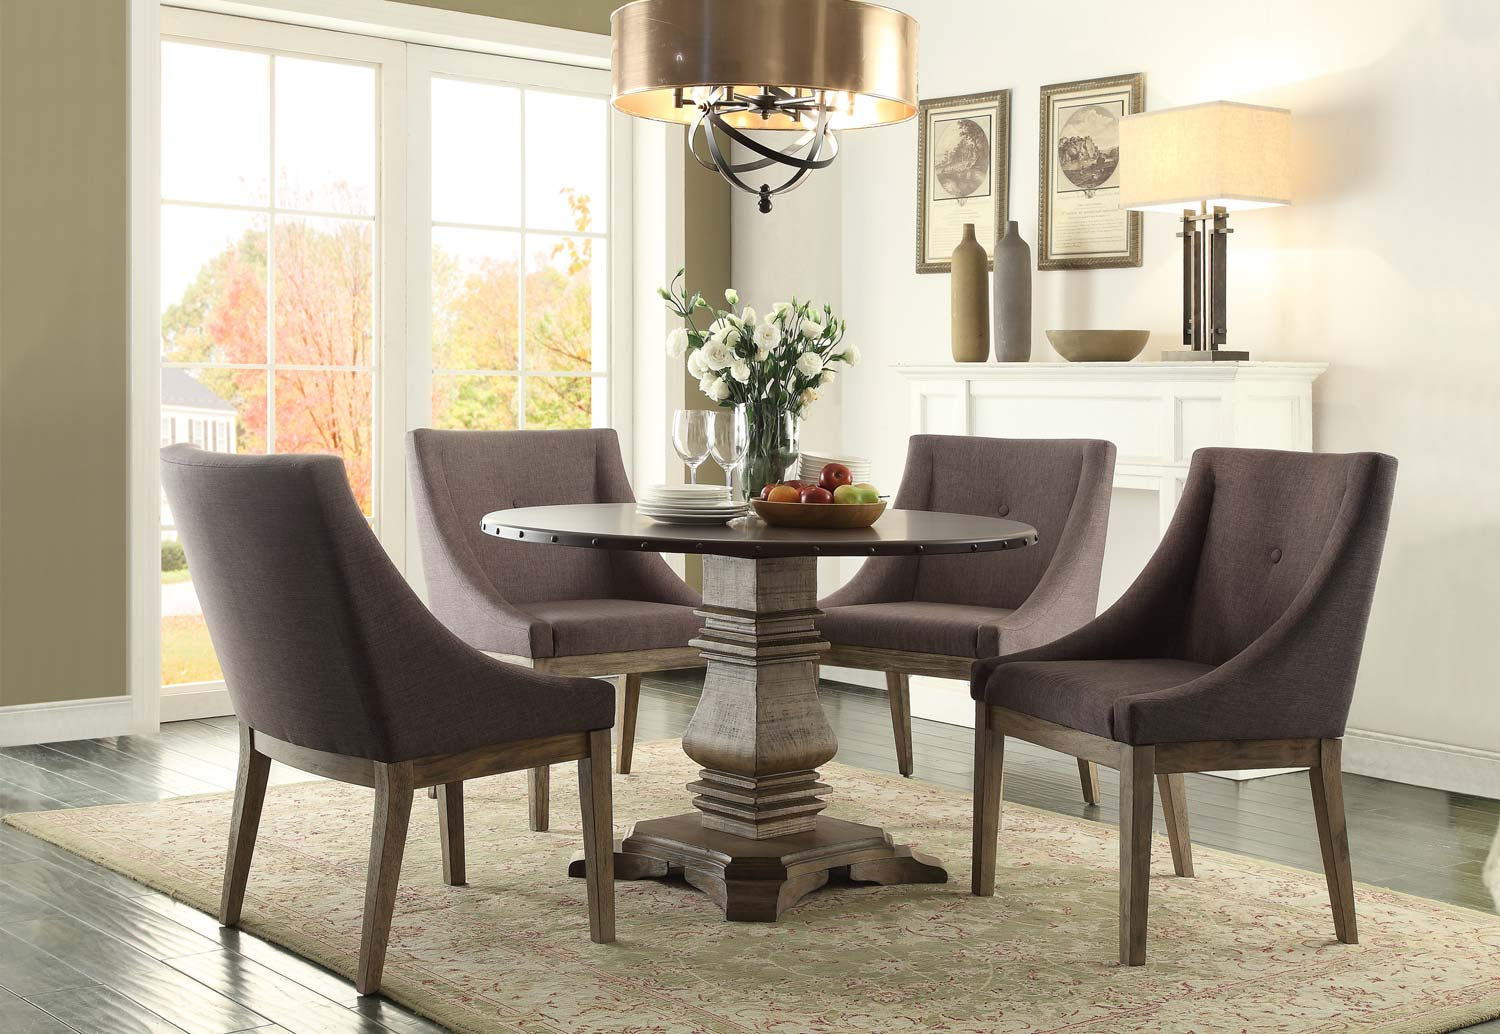 Homelegance Anna Claire Round Dining Set S3 - Driftwood/Zinc